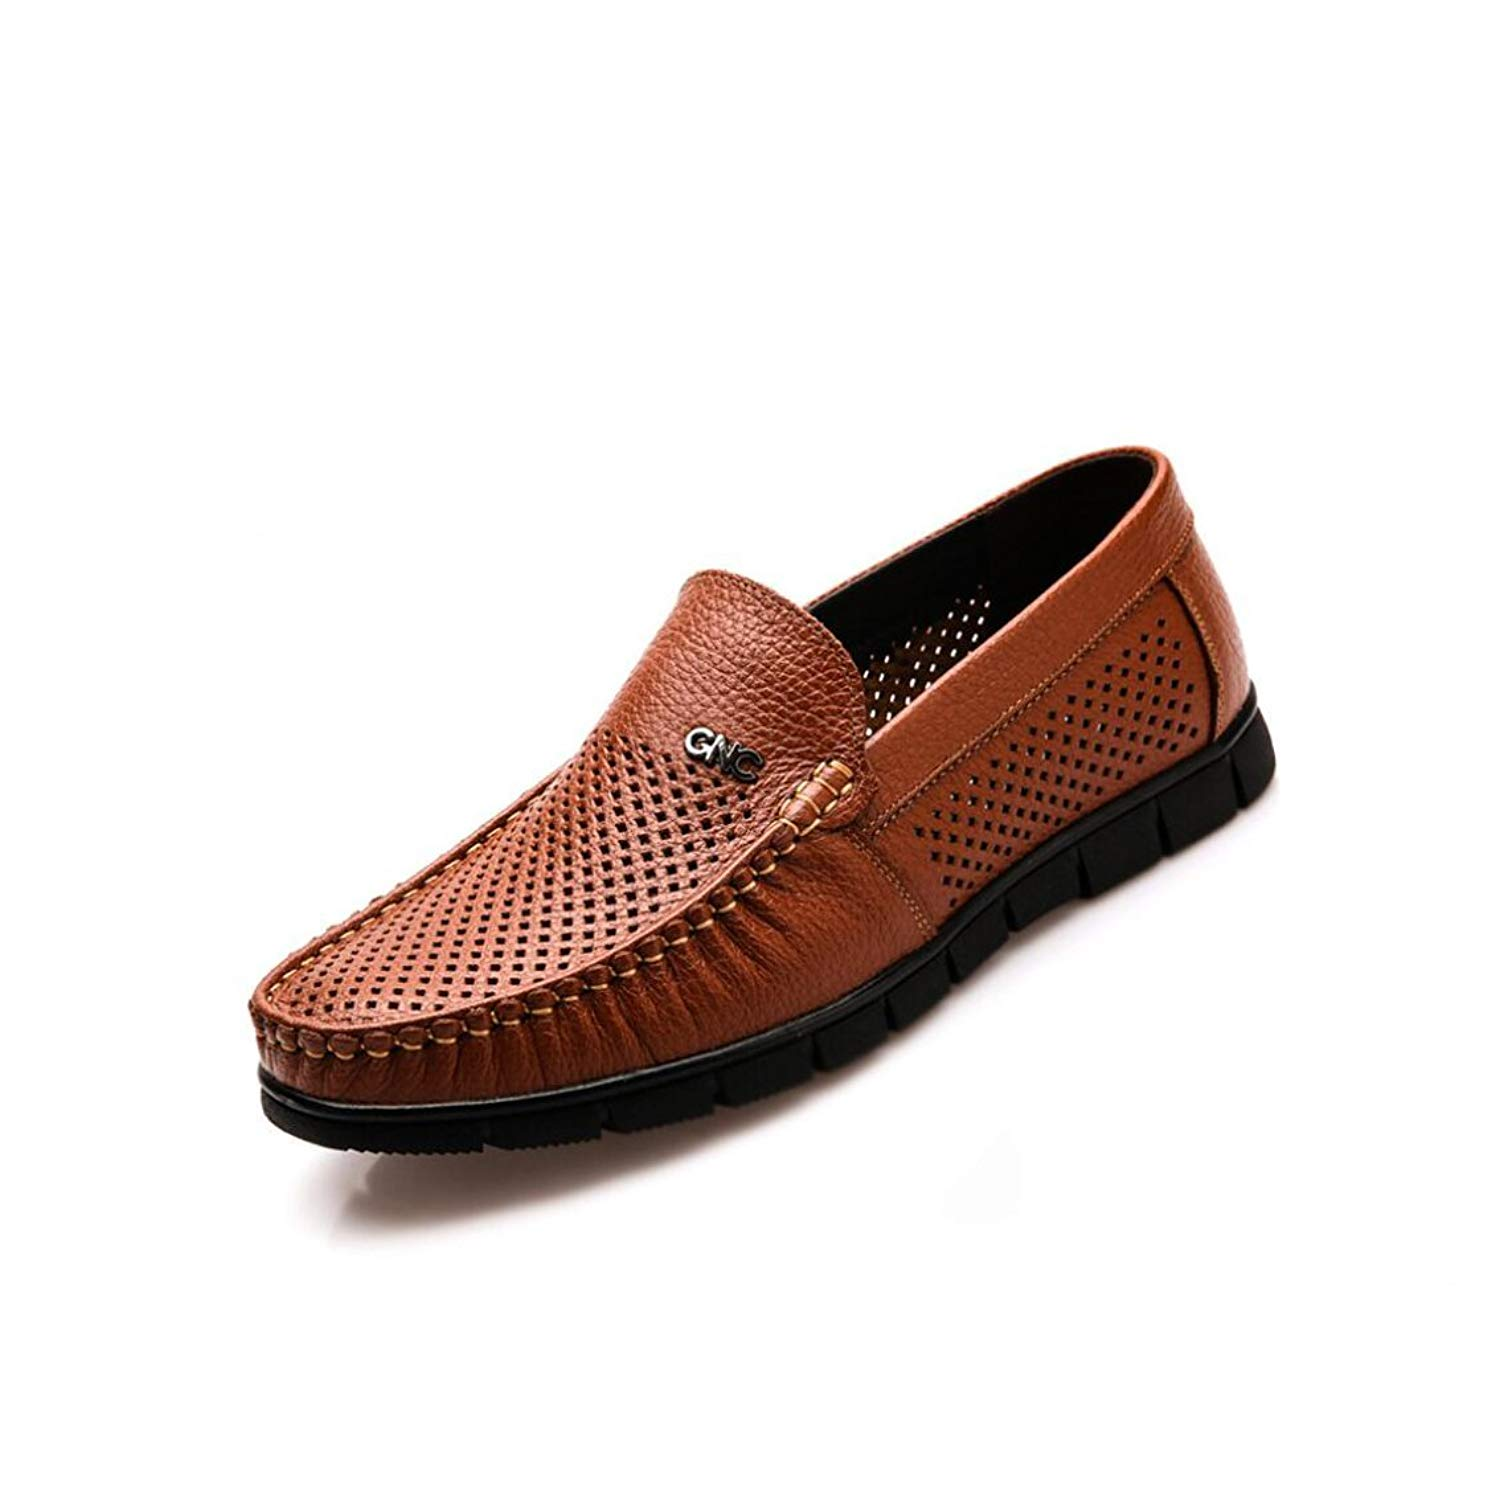 b6d007345bc Get Quotations · GFP Men s Leather Shoes